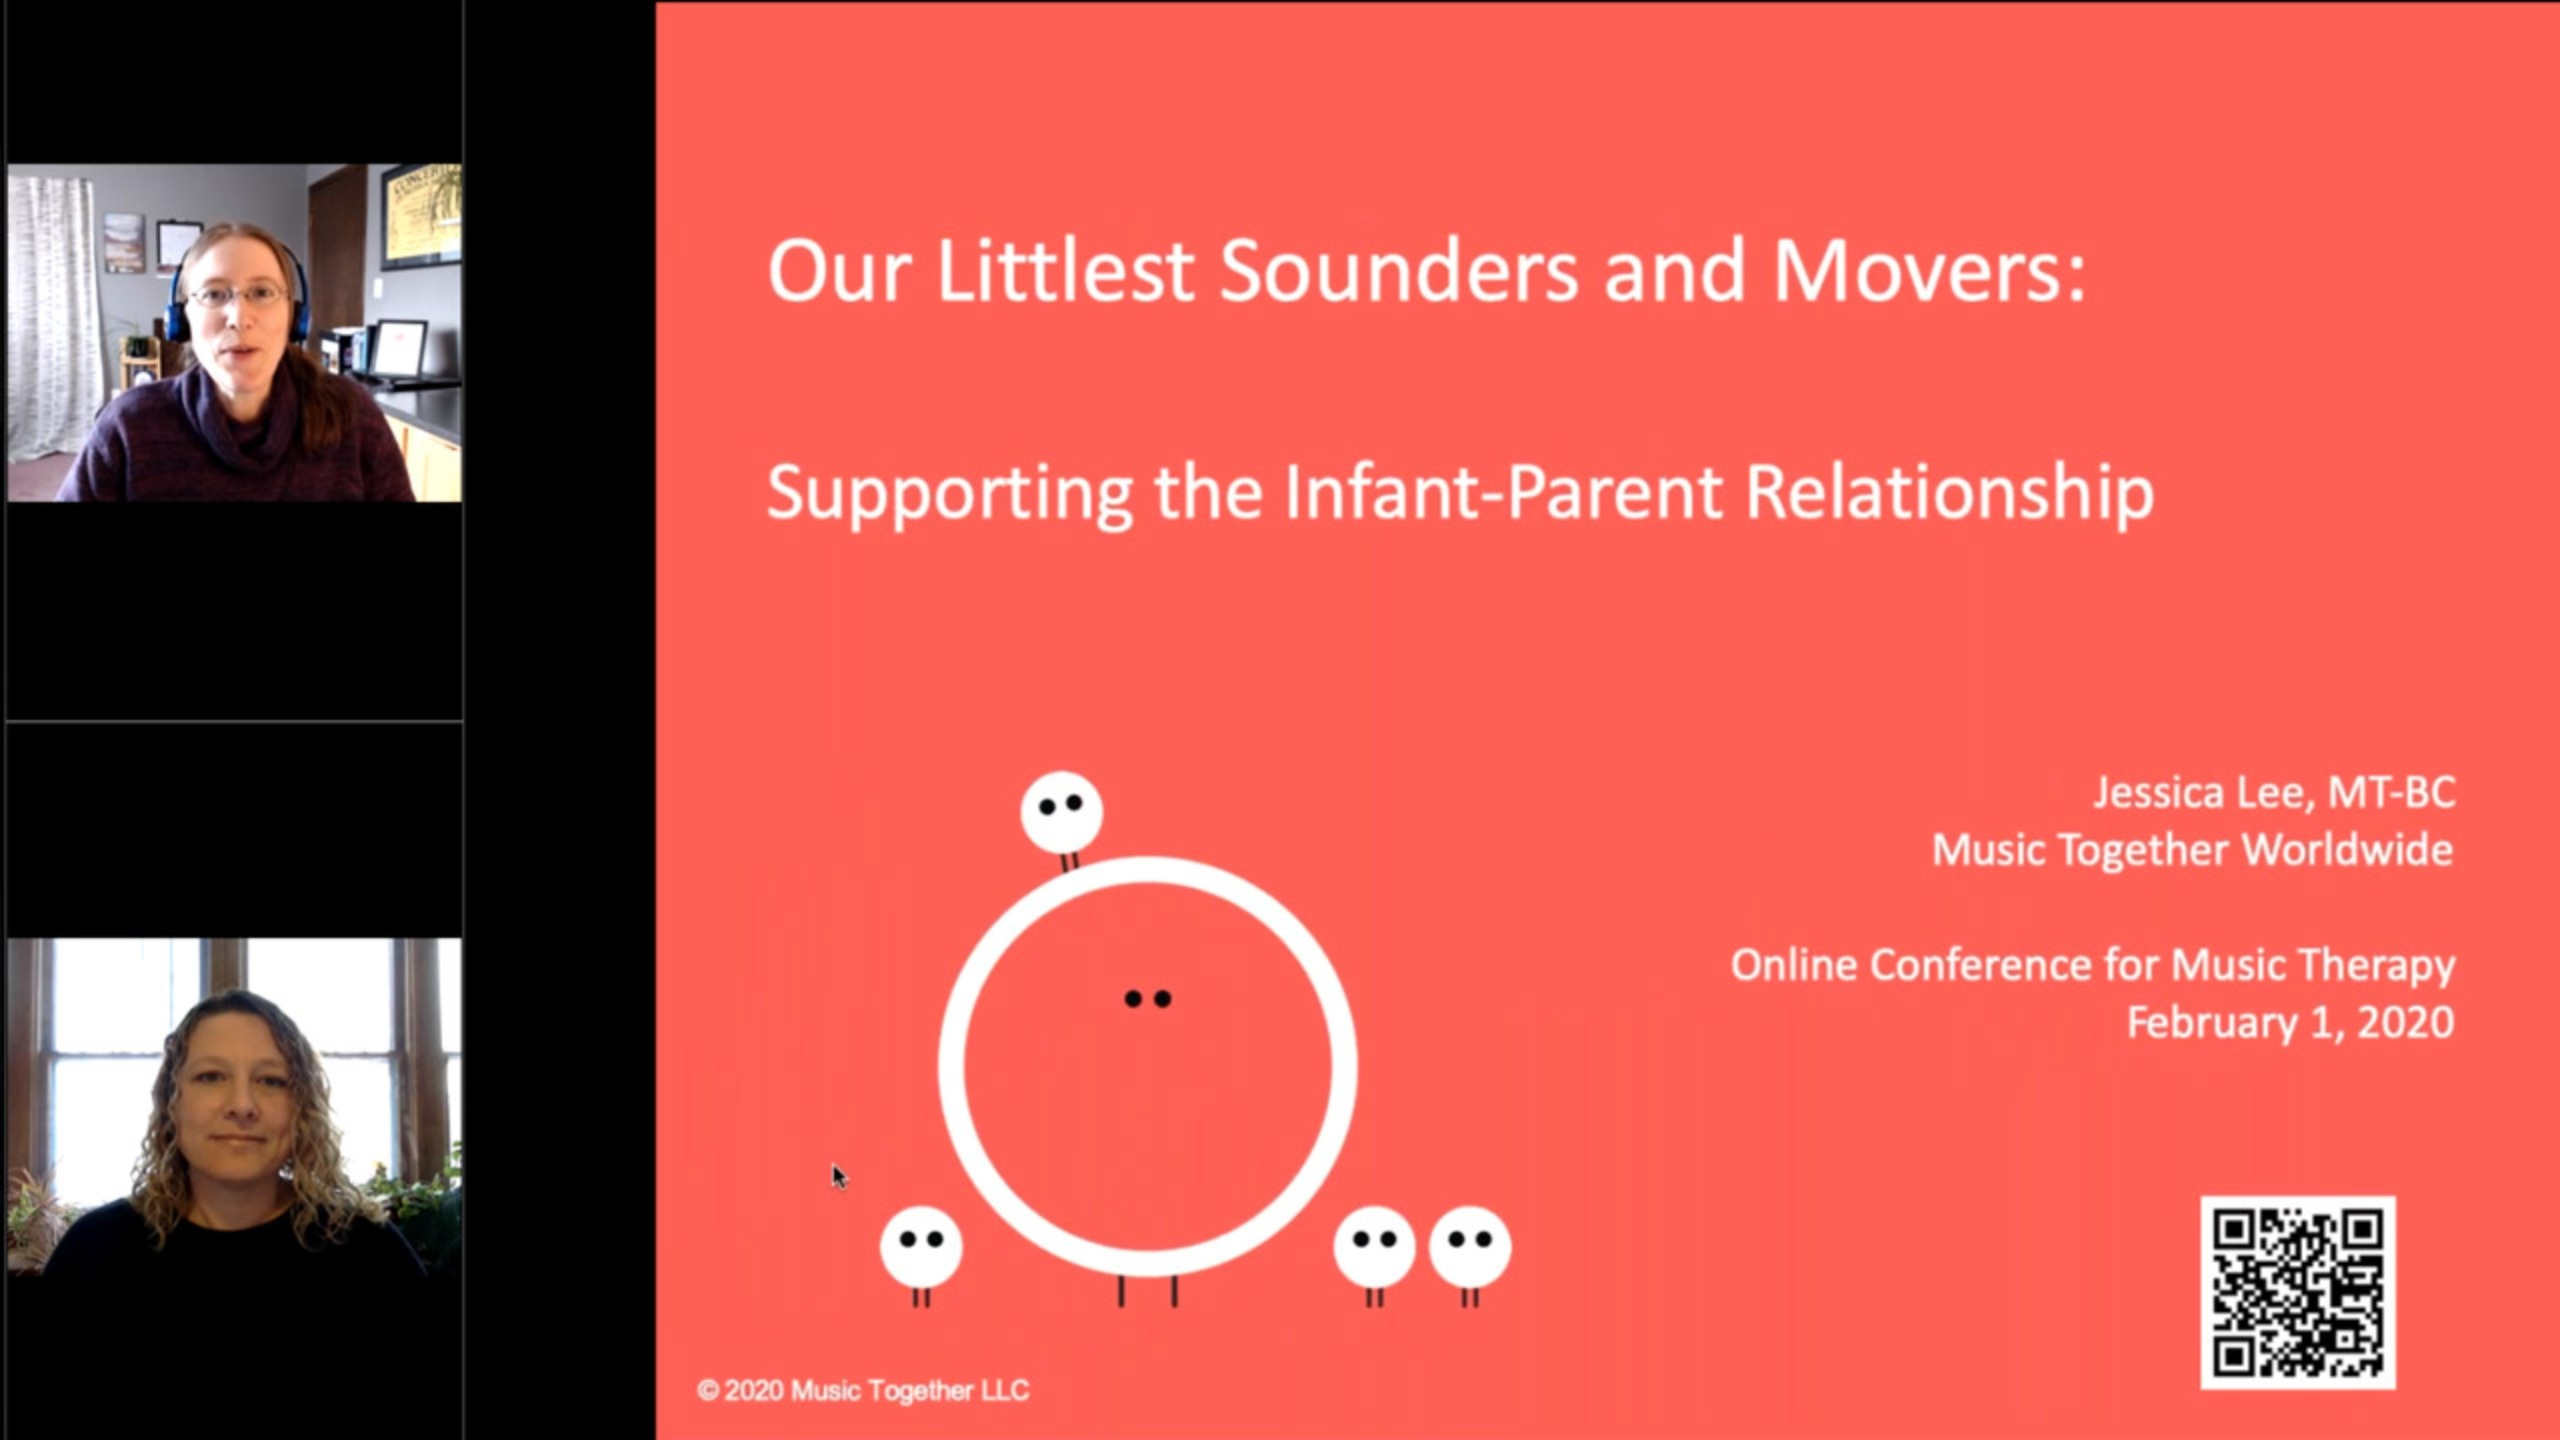 Our Littlest Sounders and Movers: Supporting the Infant-Parent Relationship